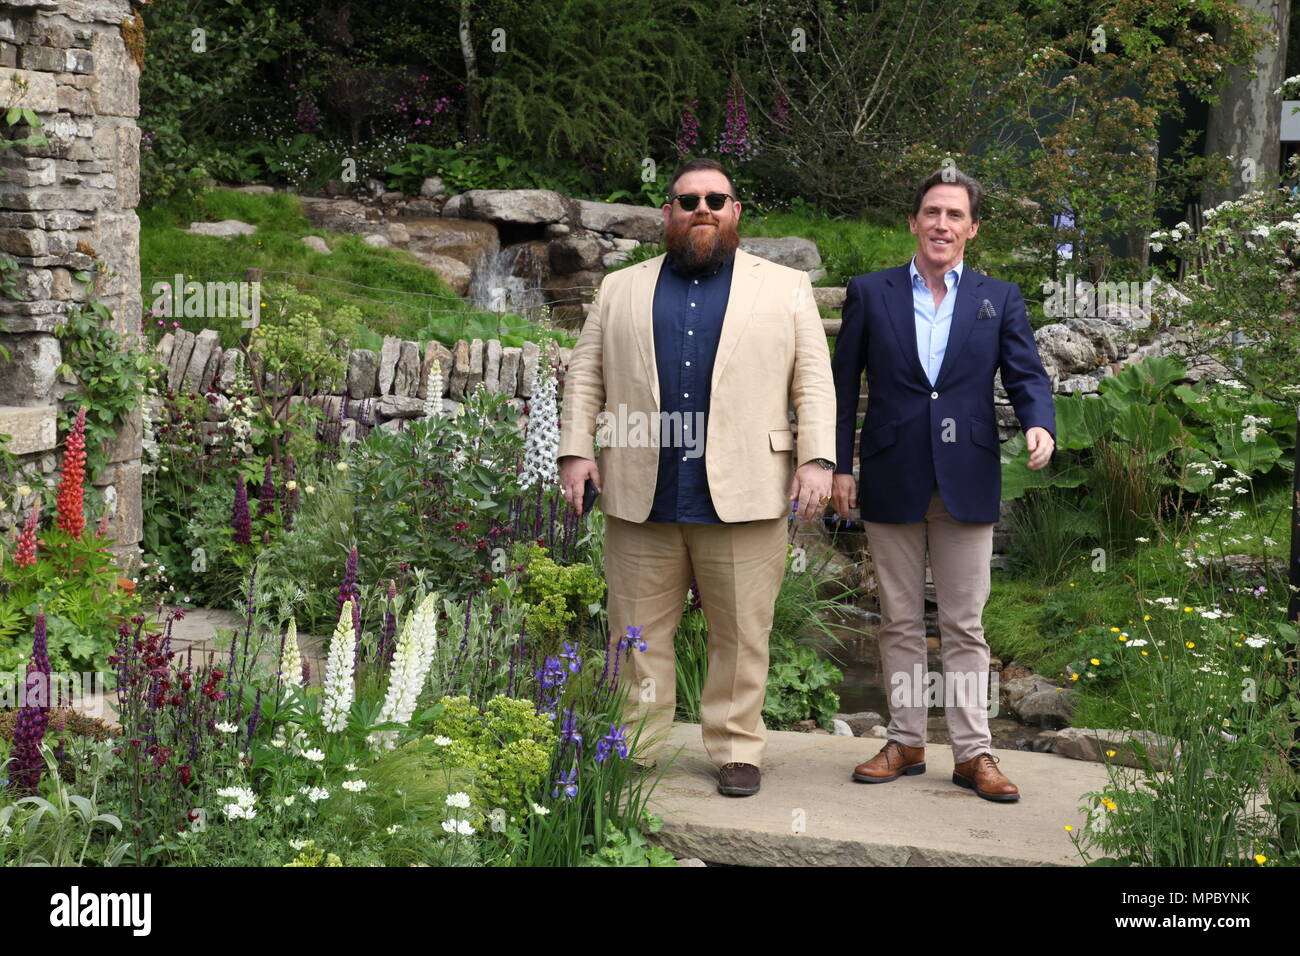 Chelsea, London, UK. 21st May, 2018. Chelsea, London, UK. 21st May 2018. Nick Frost and Rob Brydon on the Welcome to Yorkshire garden at Chelsea Flower Show 2018, designed by Mark Gregory for Landformconsultants.co.uk Credit: Jenny Lilly/Alamy Live News - Stock Image